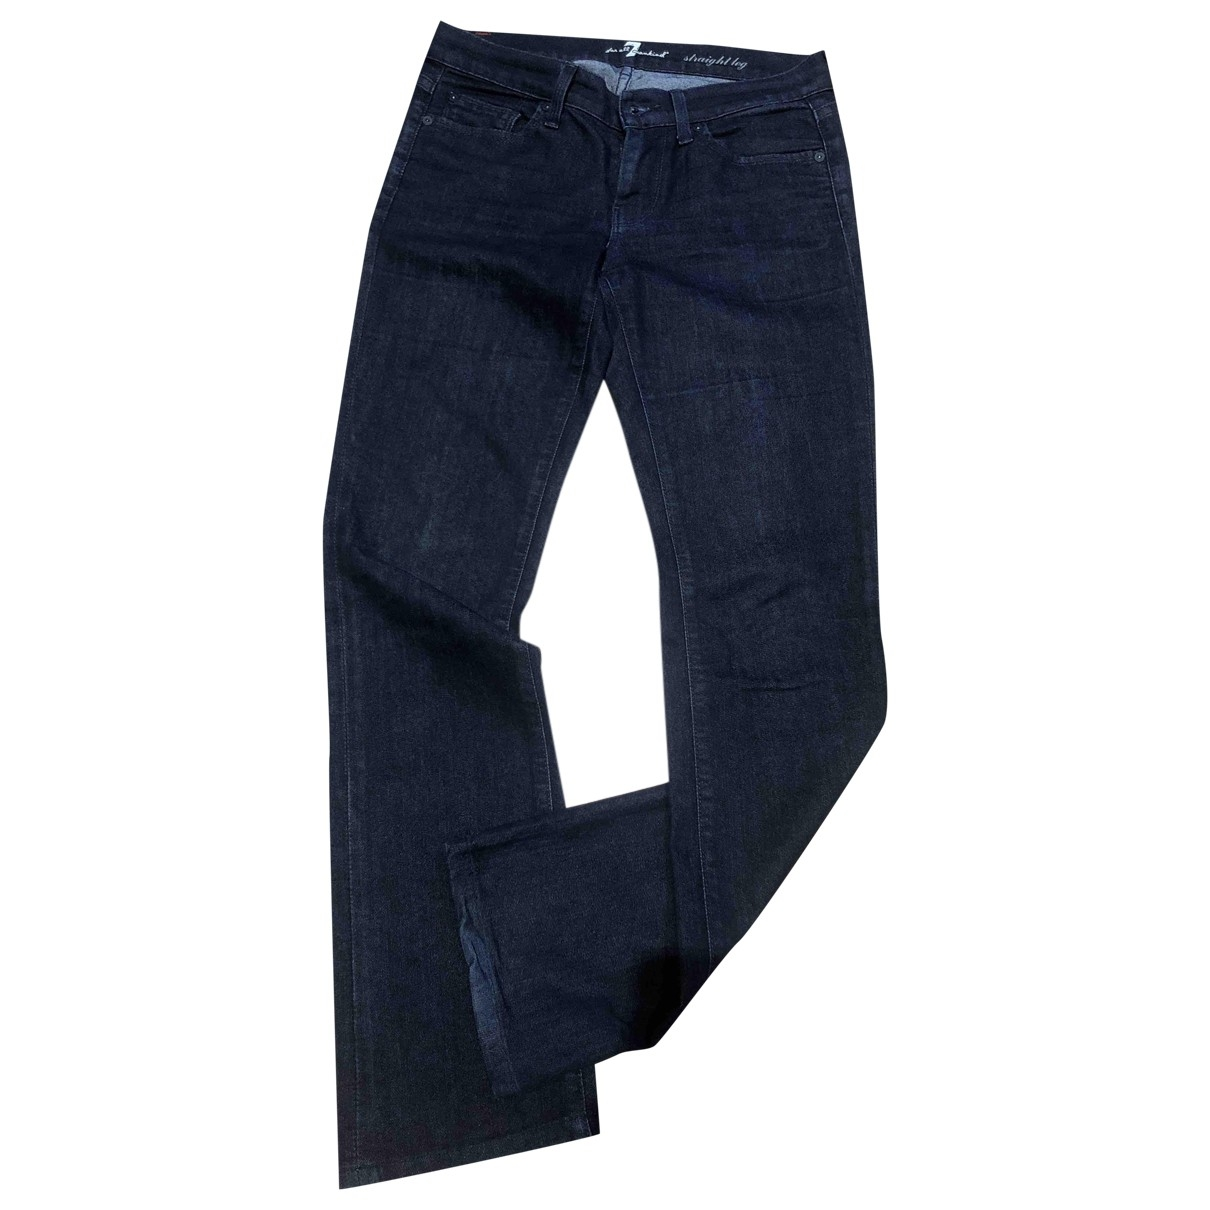 7 For All Mankind \N Navy Cotton Jeans for Women 27 US